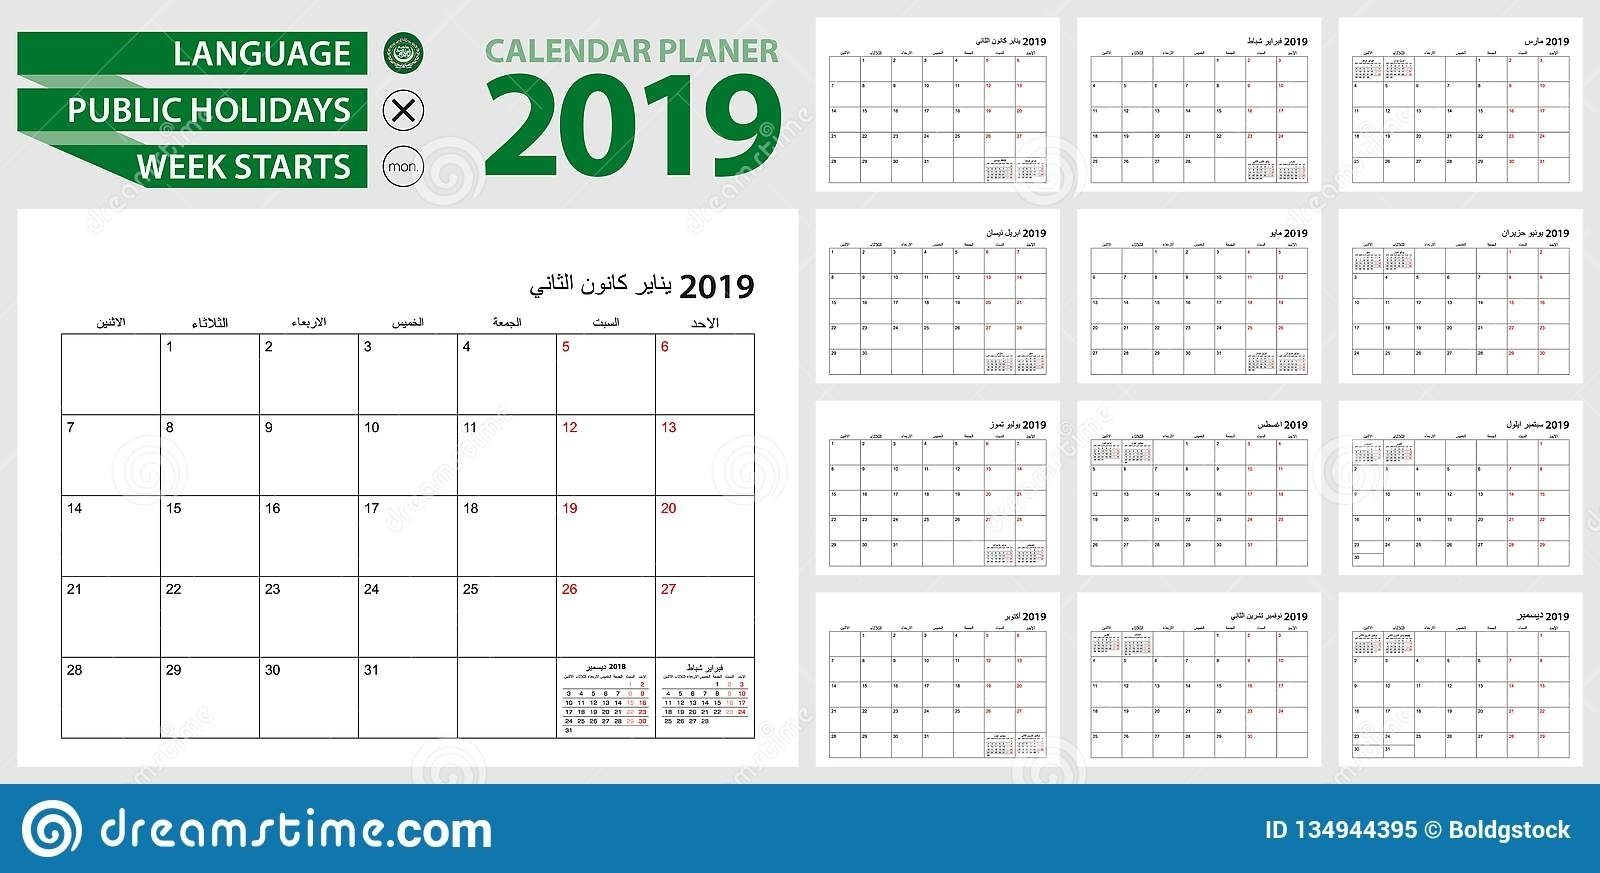 Arabic Calendar Planner For 2019. Arabic Language, Week Starts From pertaining to Calendar Of Ramadan In Saudi Arabia